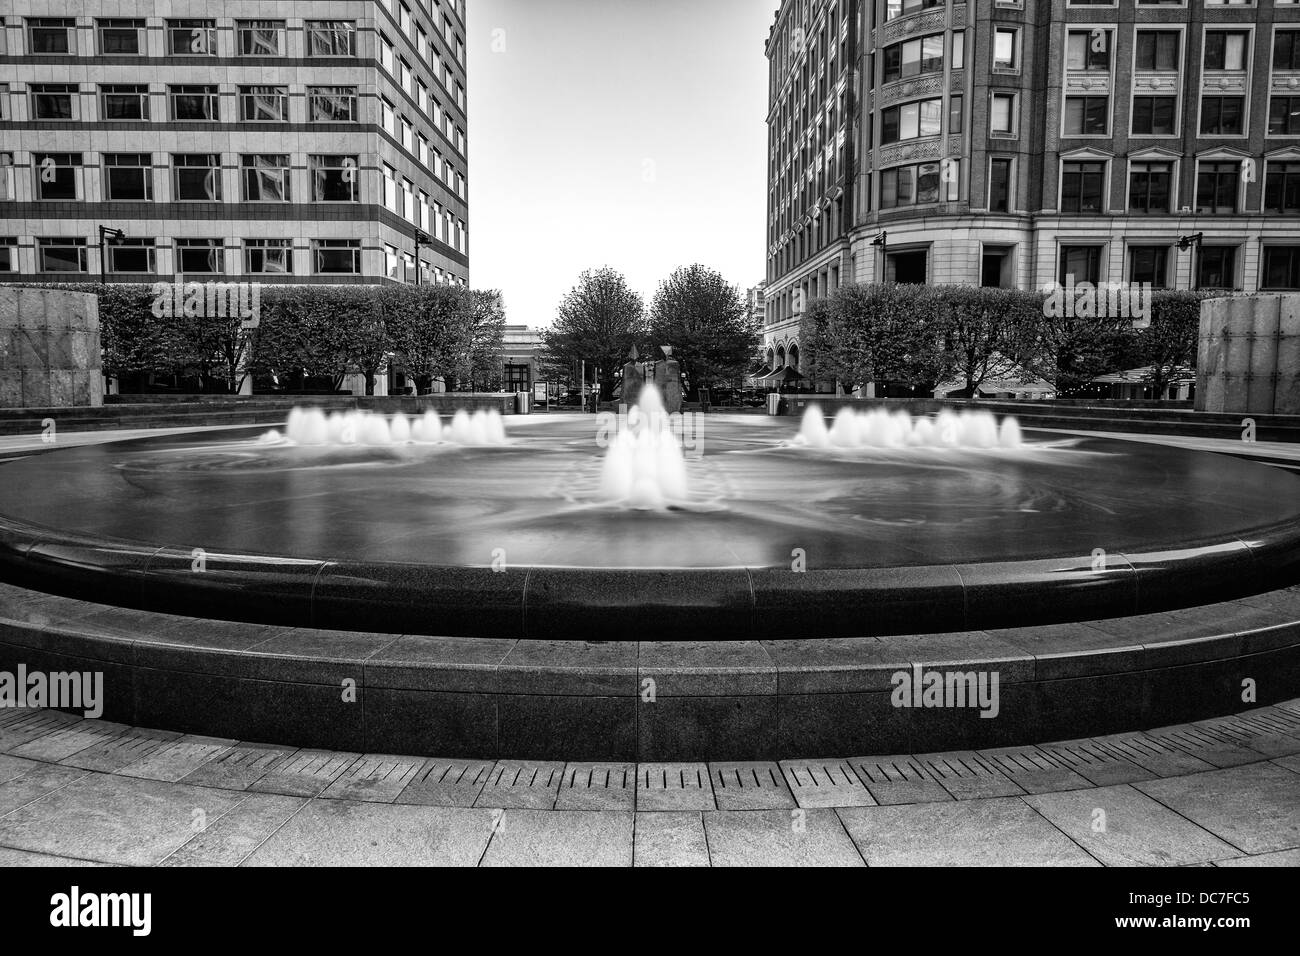 Fountain in Cabot Square - Stock Image